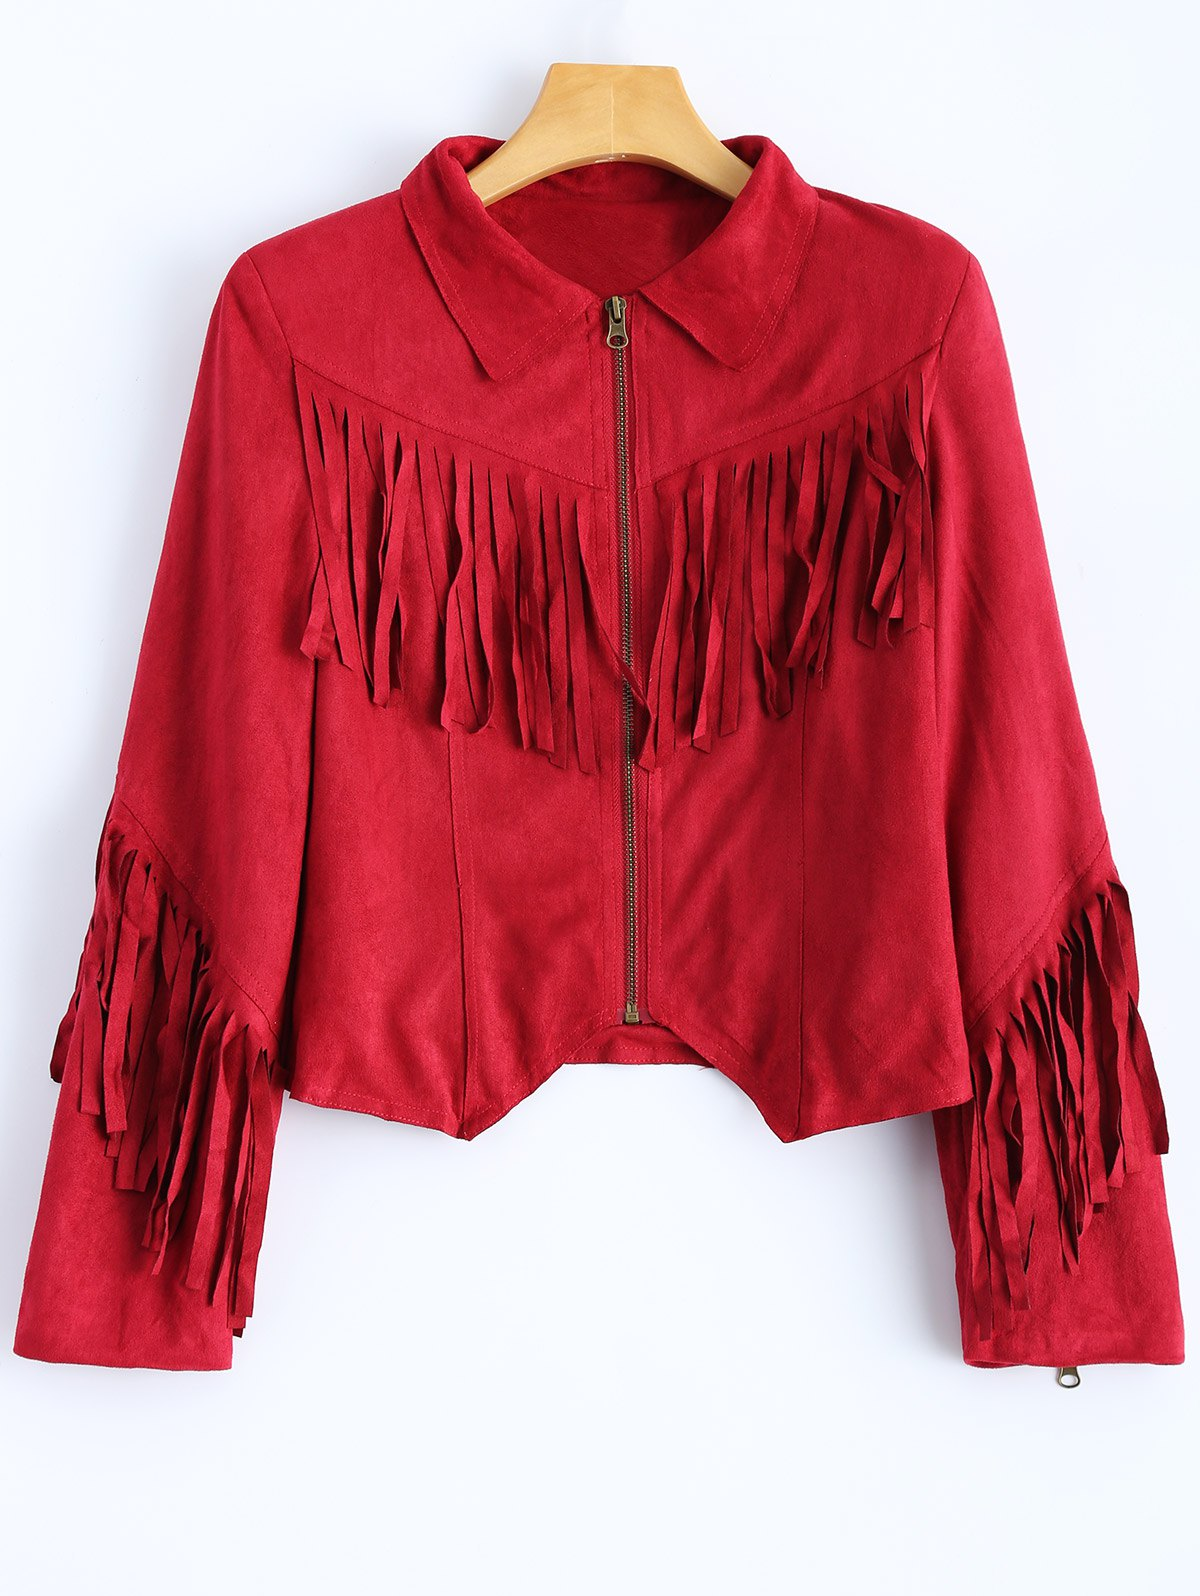 Tasselled Cropped Faux Suede JacketClothes<br><br><br>Size: S<br>Color: RED